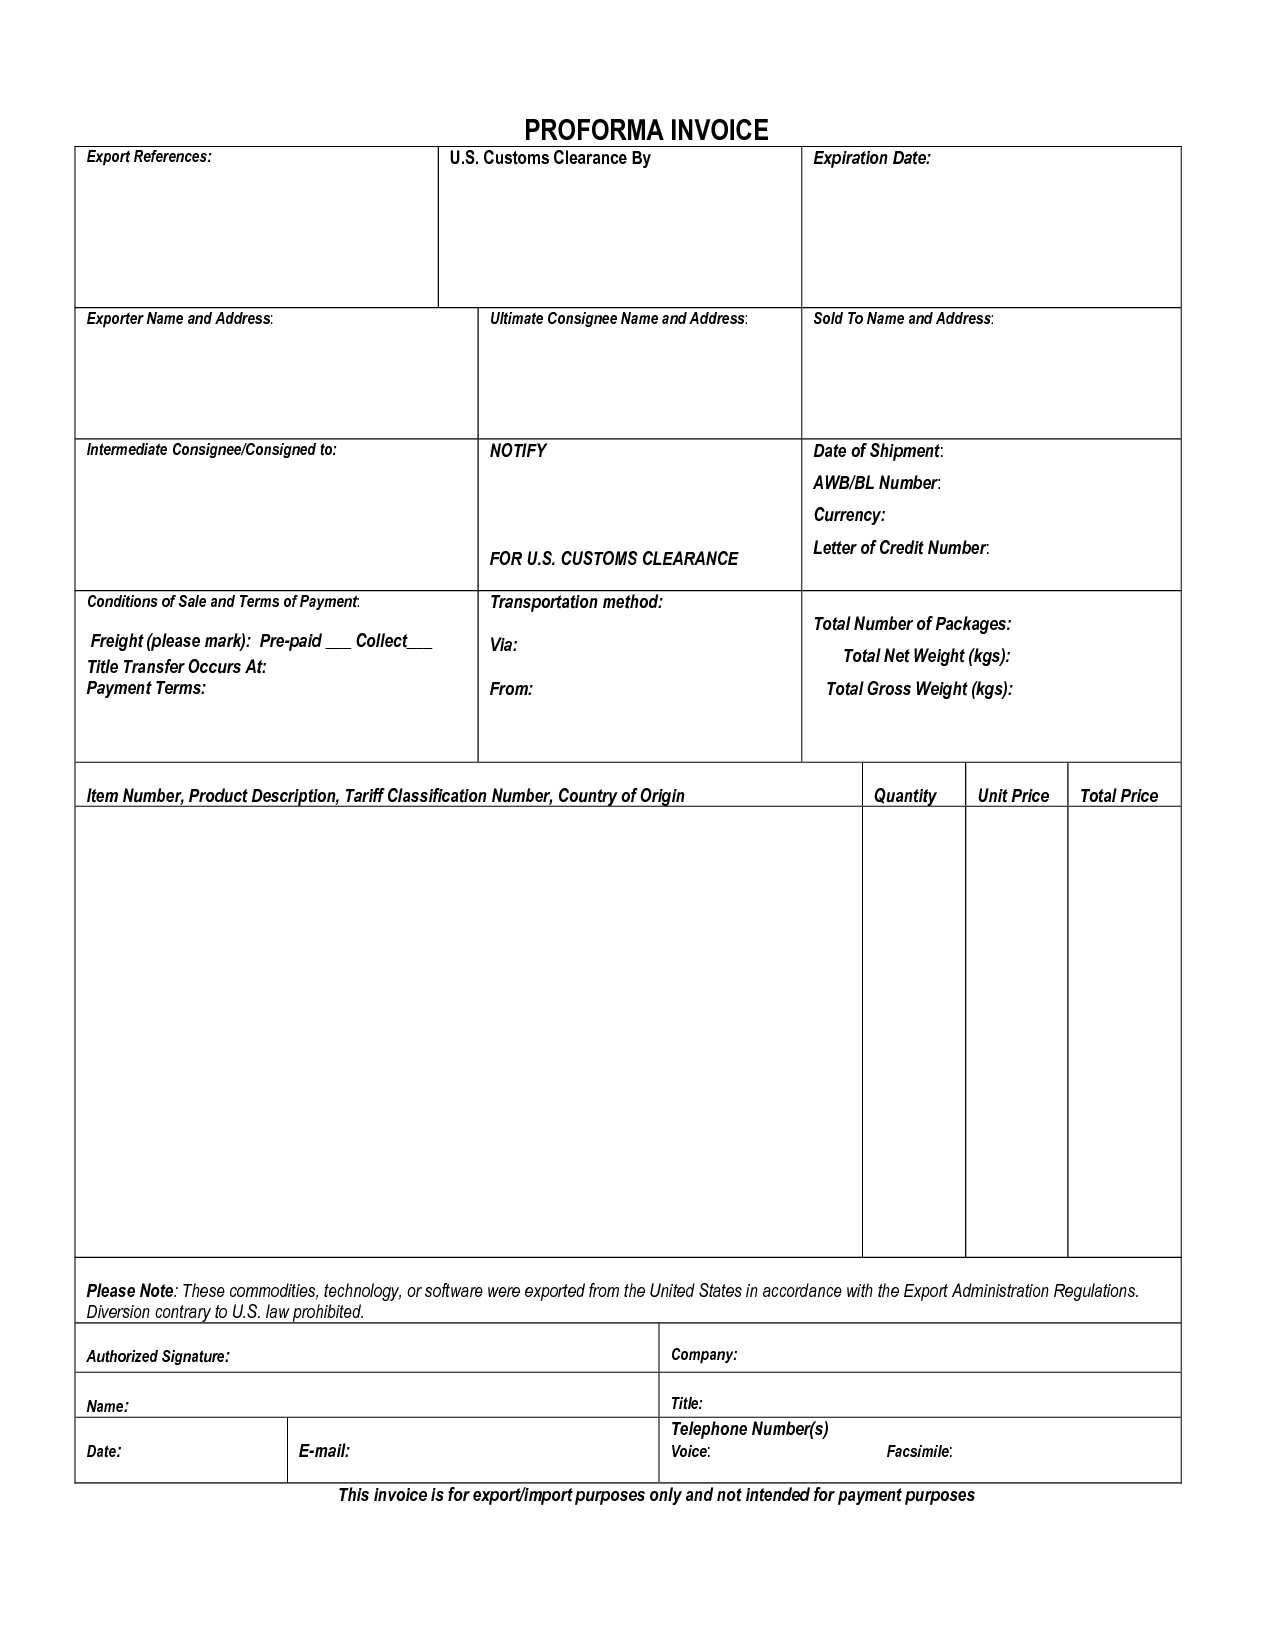 Proforma Invoice Example 135012 Proforma Invoice Customs Invoice Template Ideas